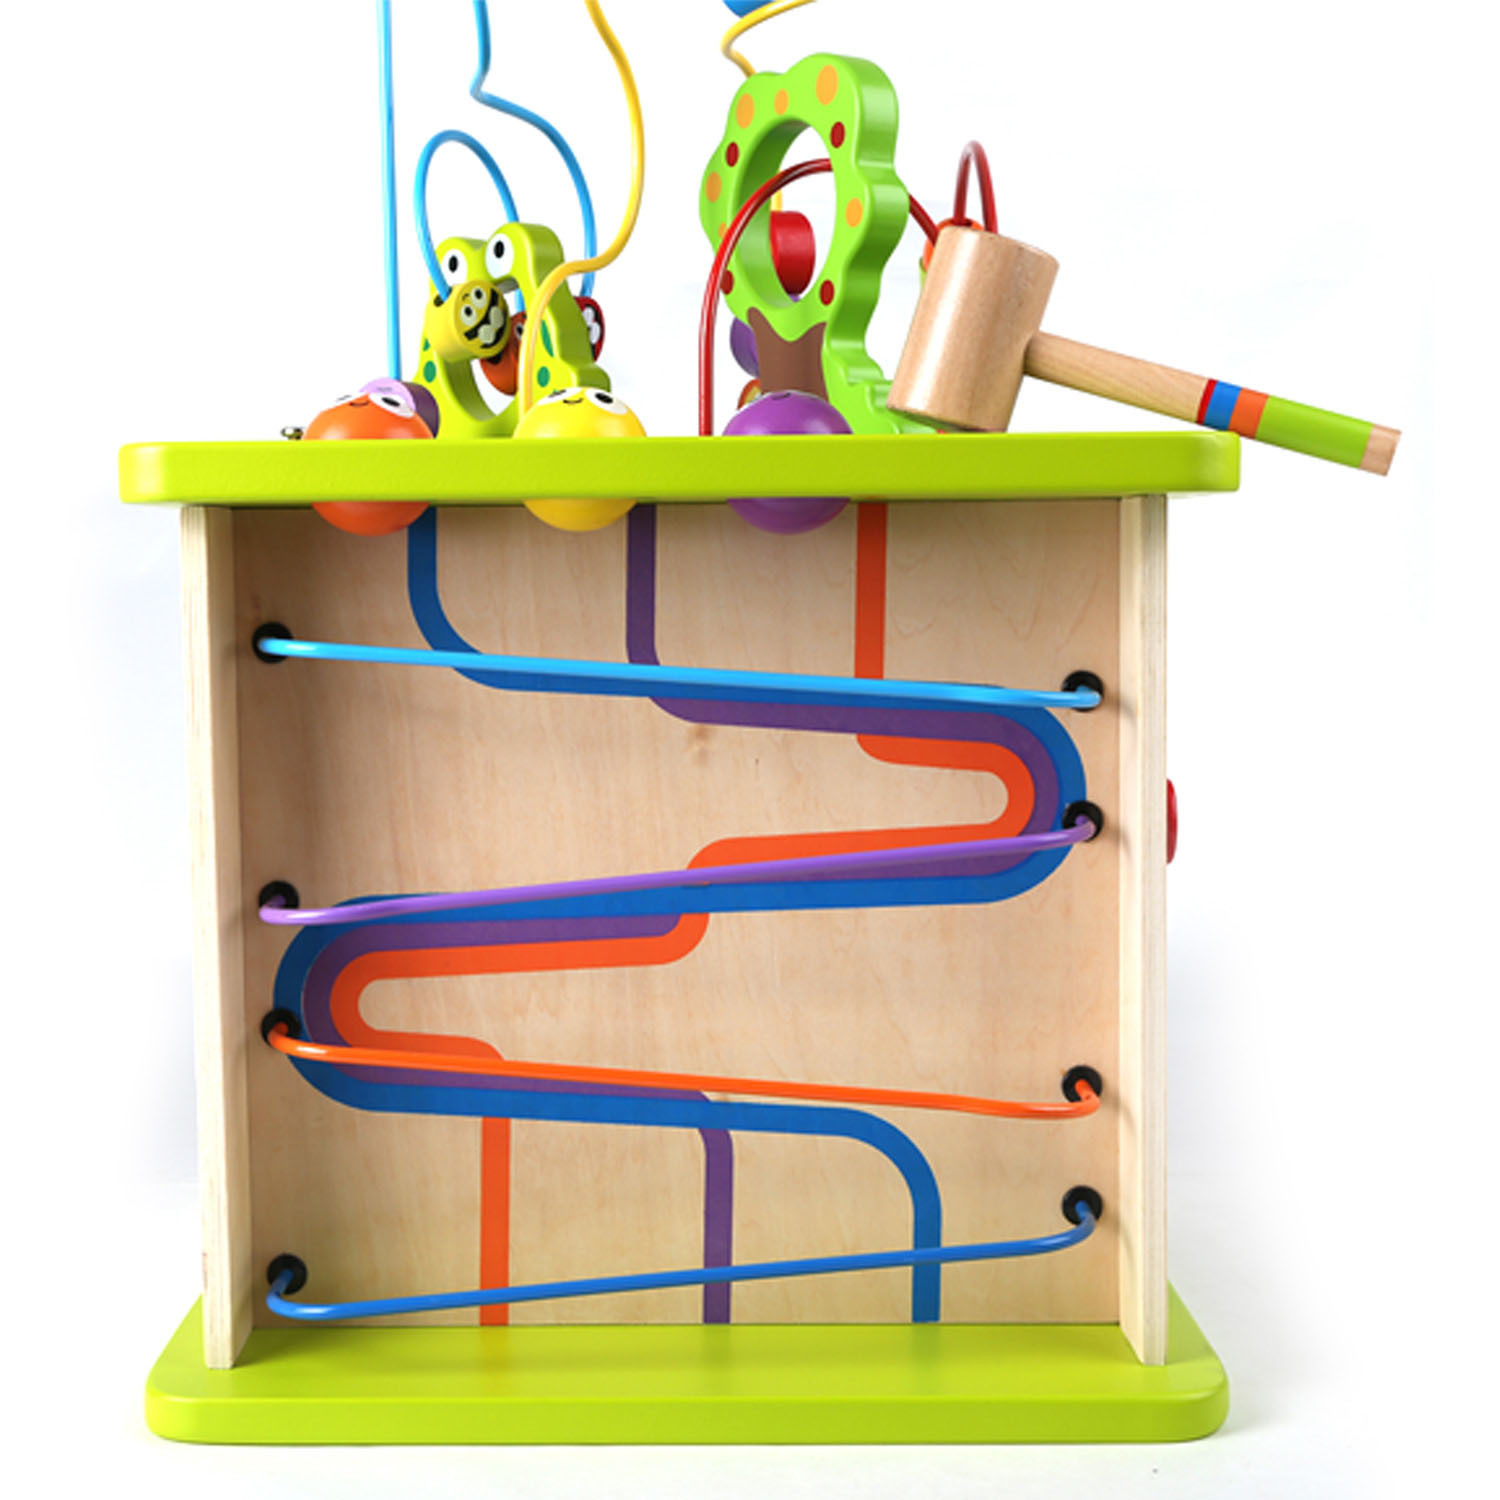 Hape - Country Critters Play Cube image